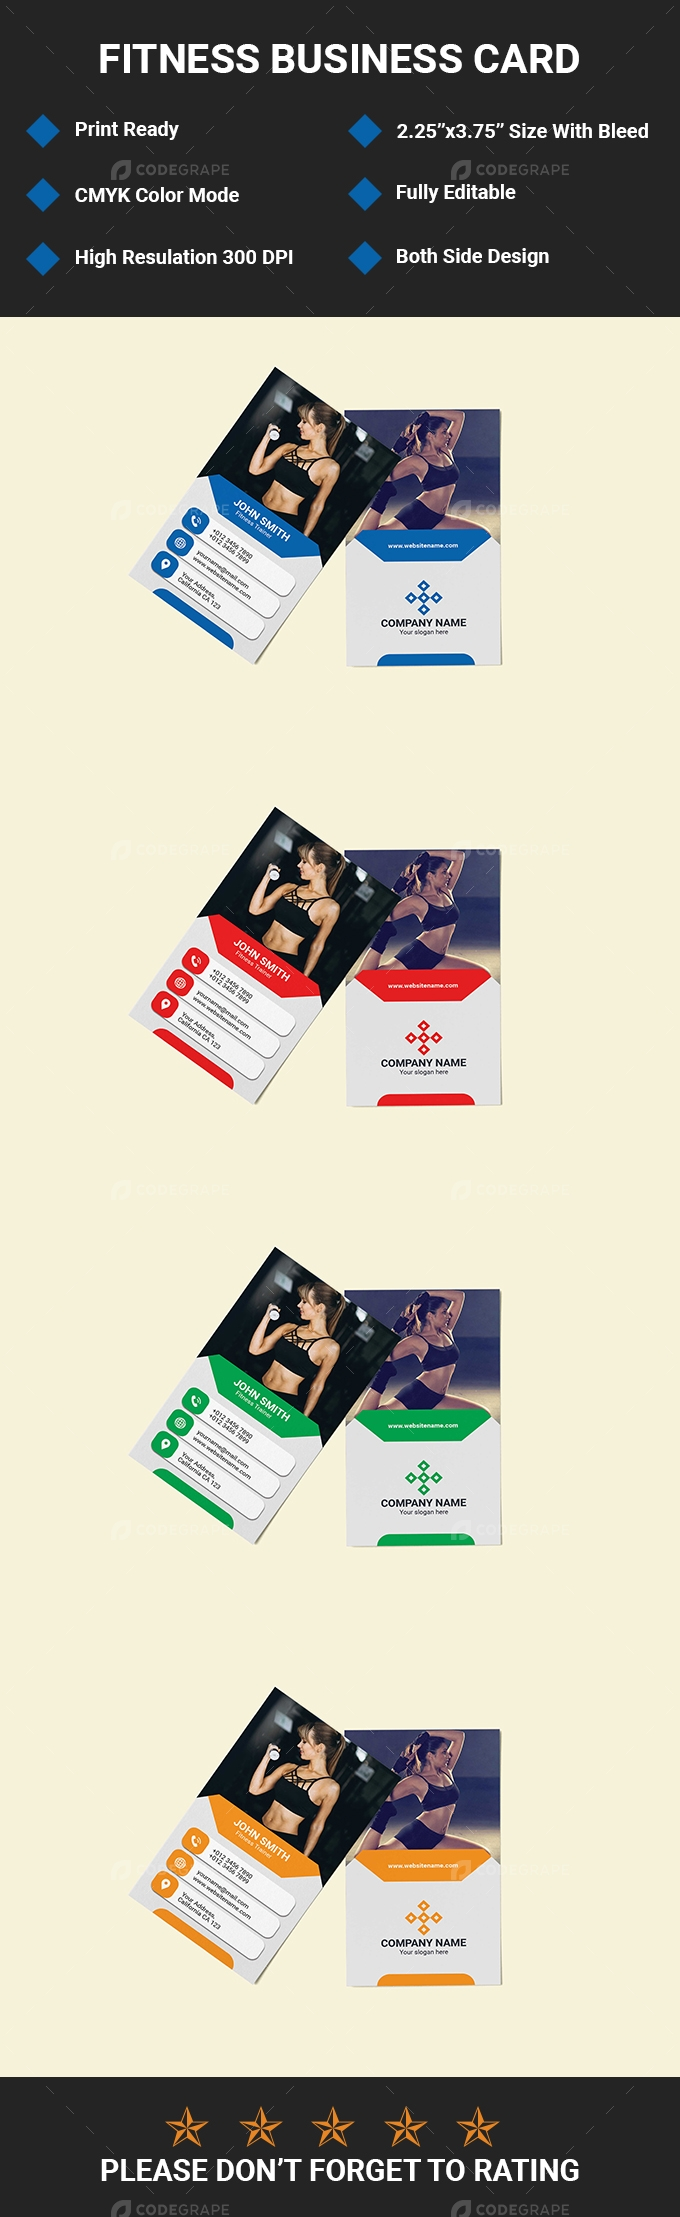 Fitness Business Card